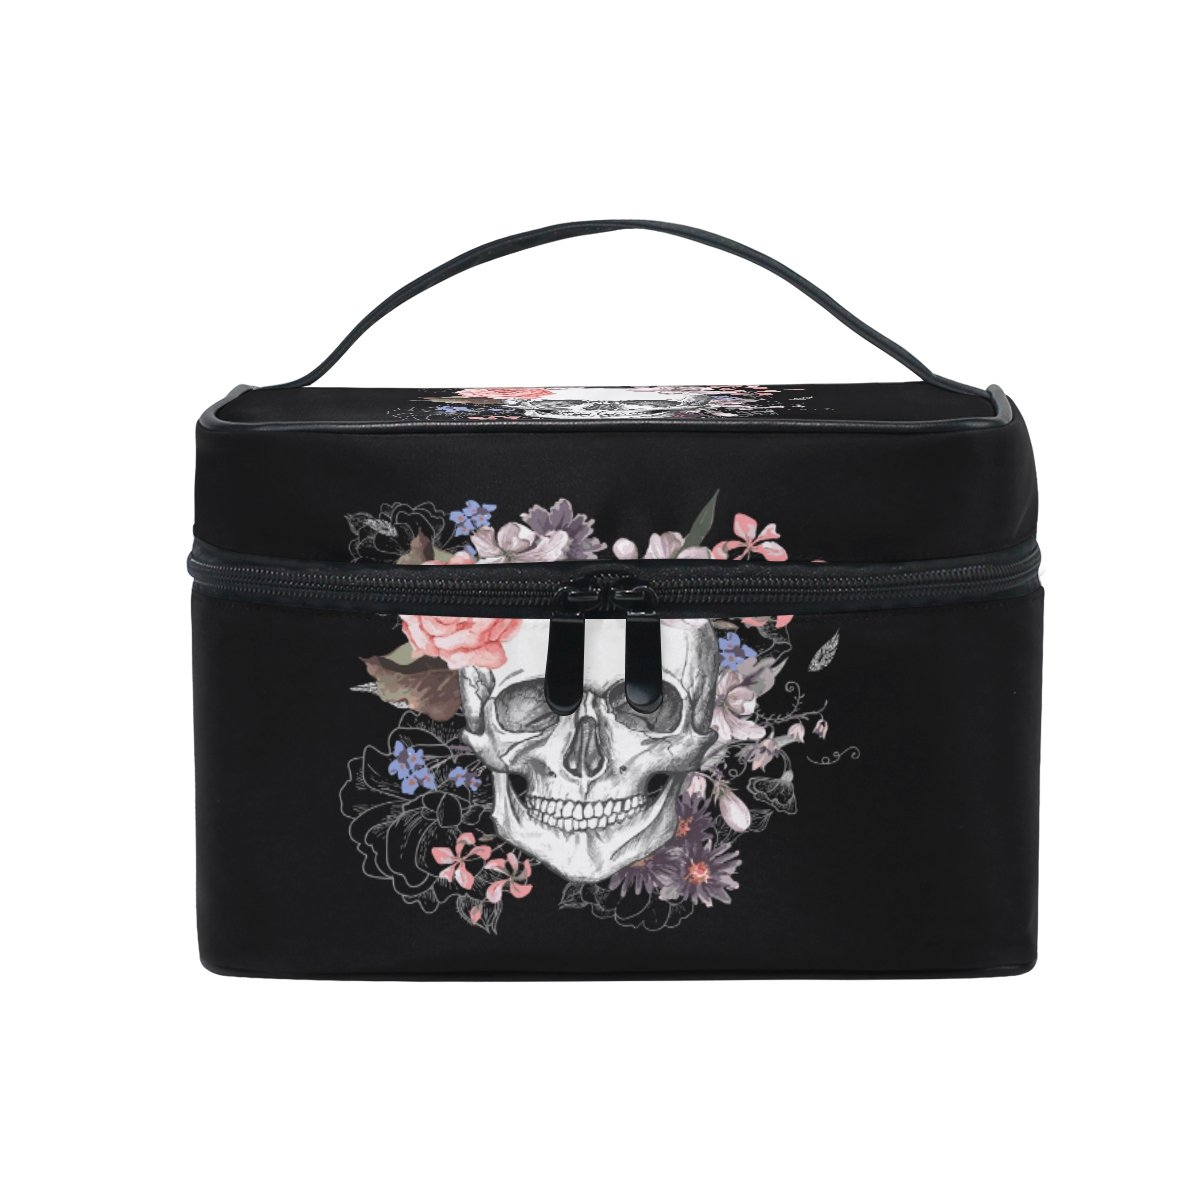 KUWT Sugar Skull and Rose Women Travel Makeup Bag Portable Cosmetic Train Case Toiletry Bag Beauty Organizer (19 Design)